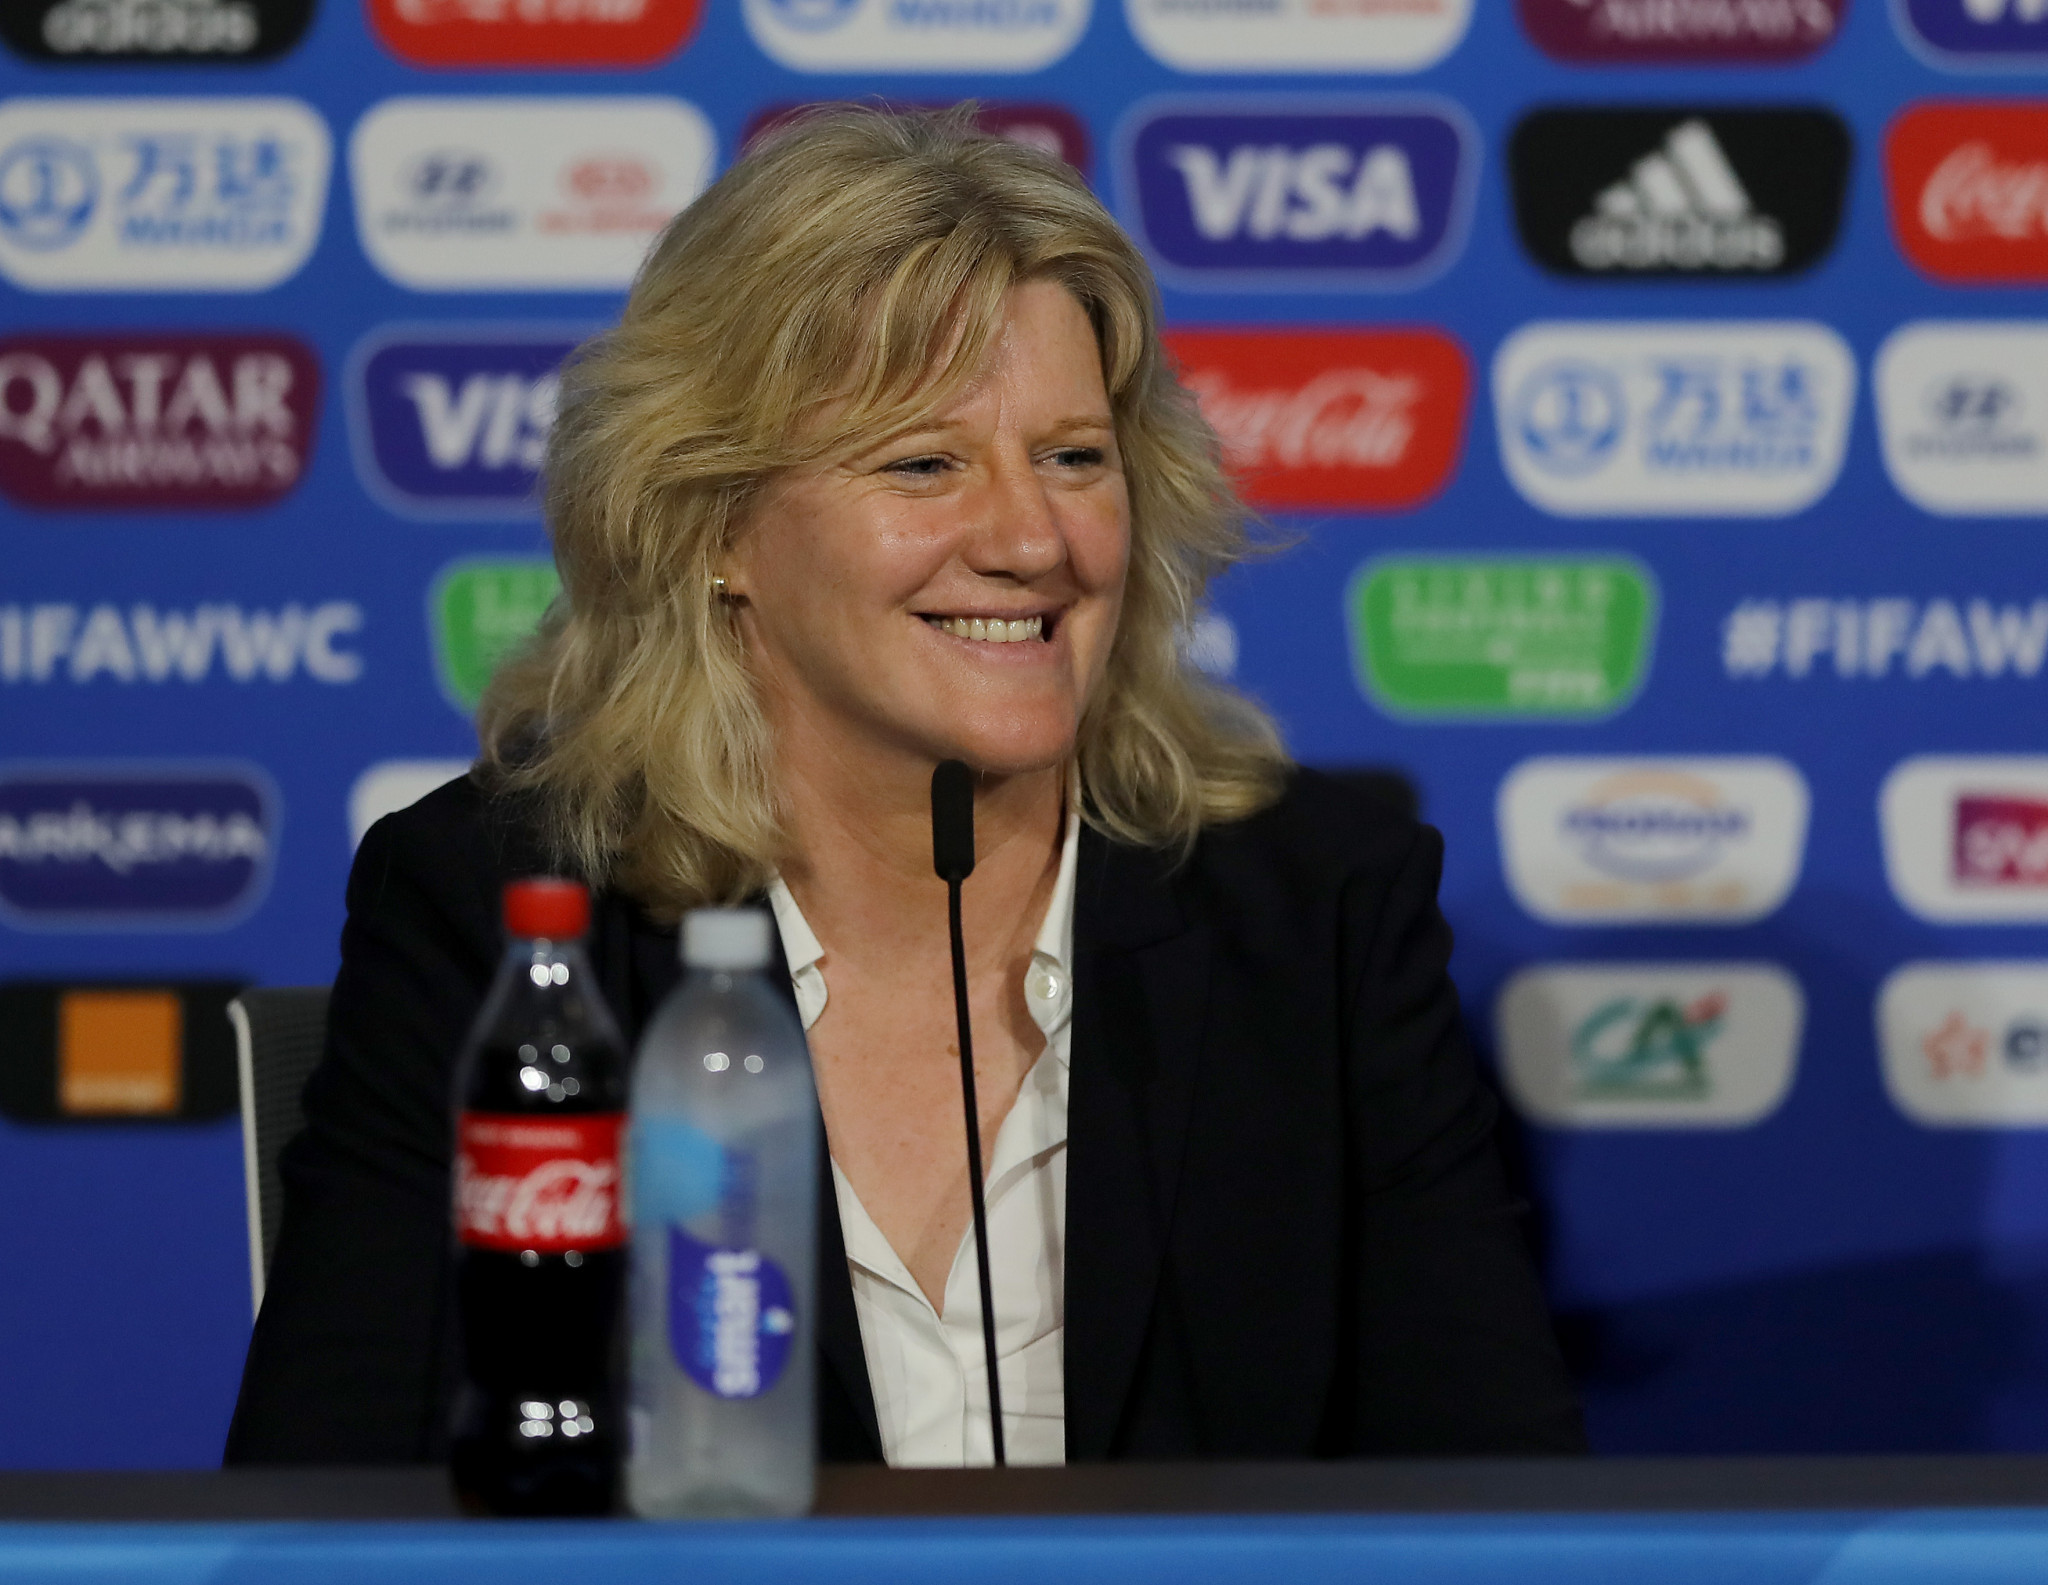 Brigitte Henriques is determined to achieve parity across the CNOSF's member federations ©Getty Images